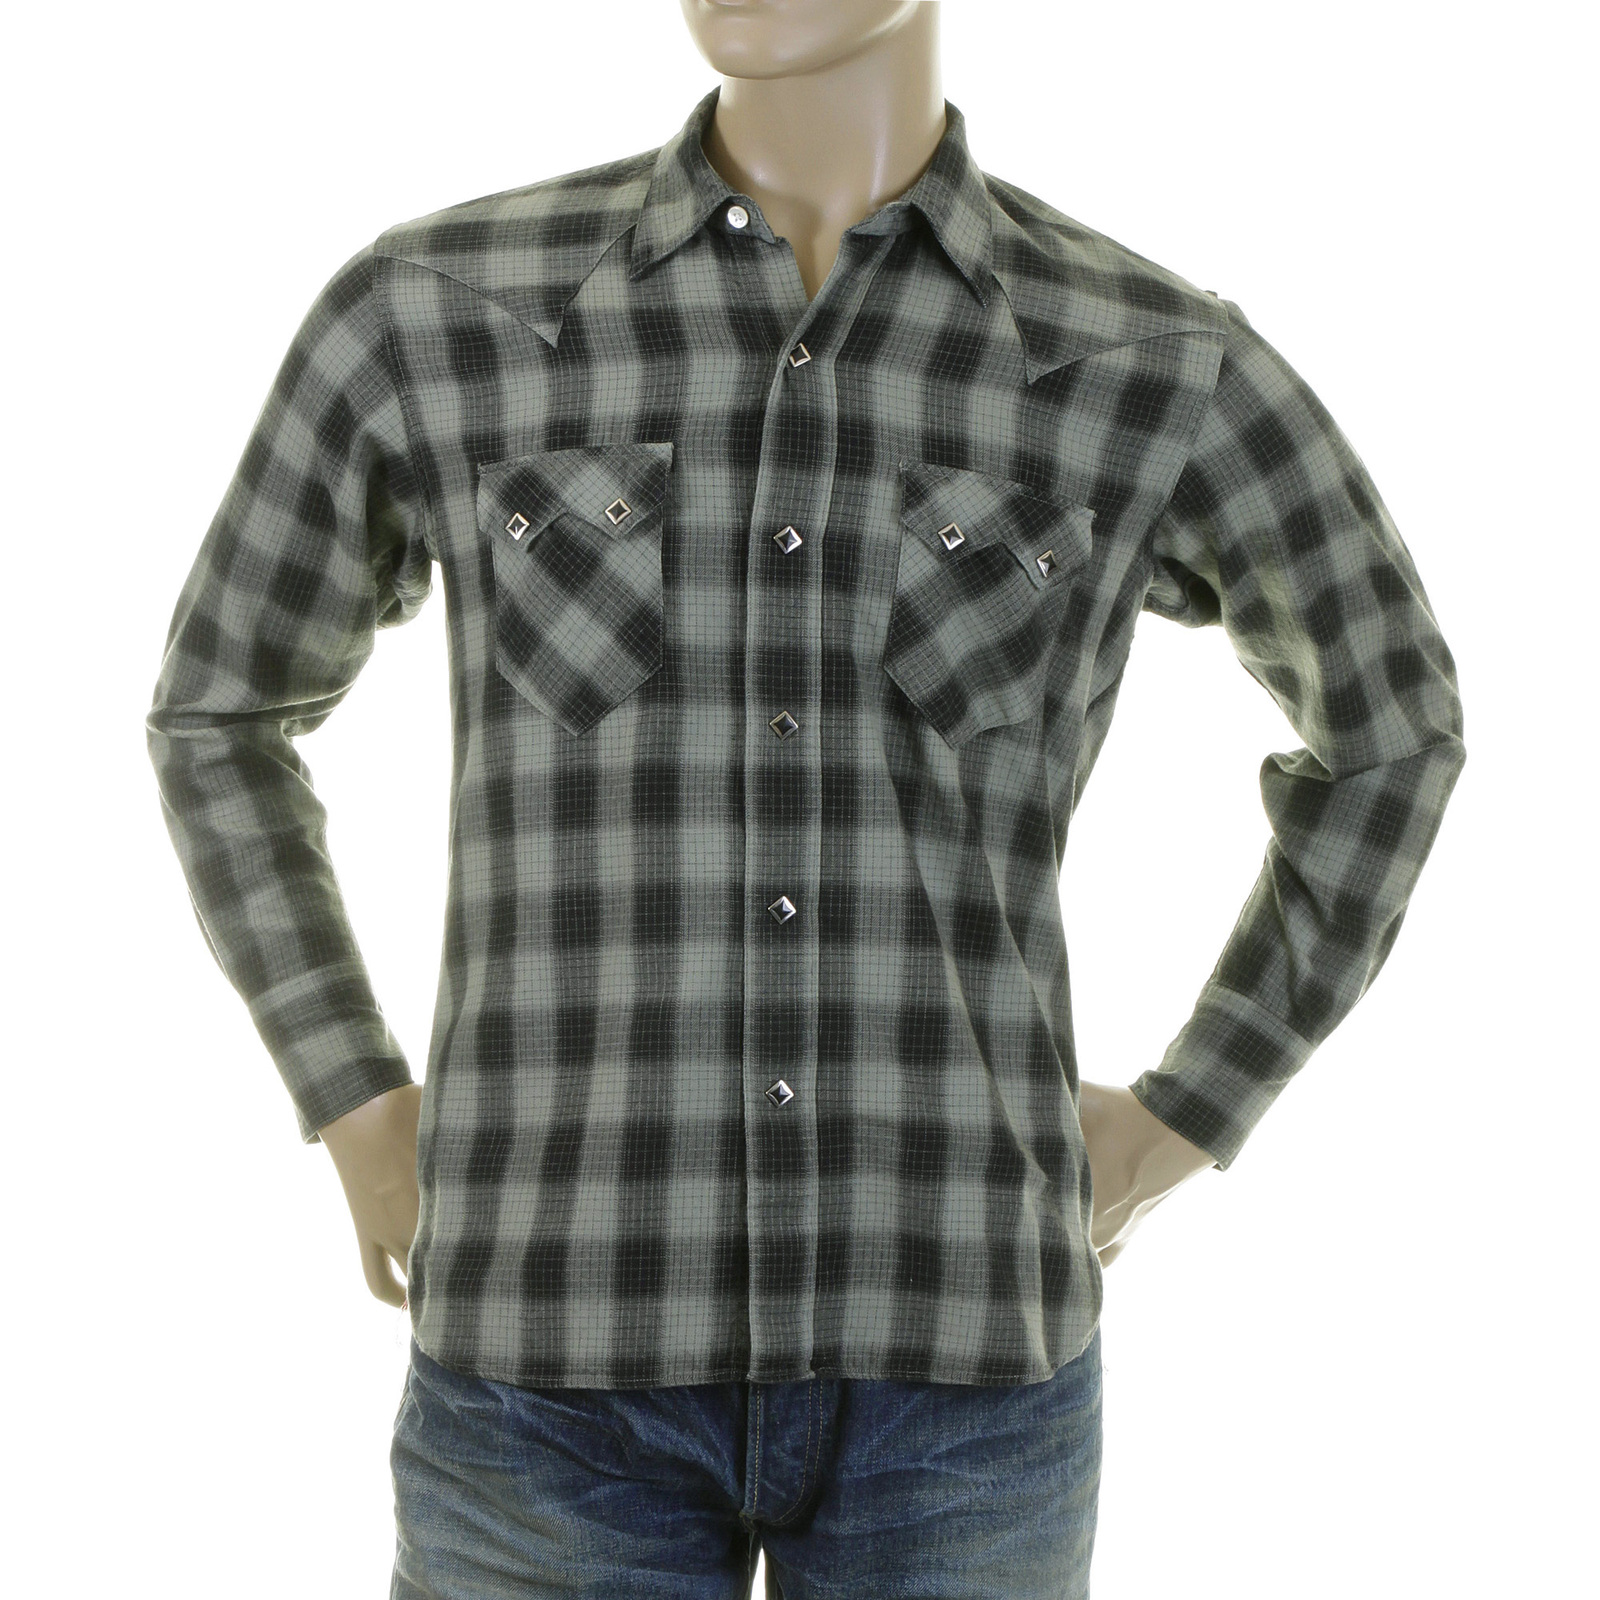 Sugarcane stylish western long sleeved checked shirt for Men s regular fit shirts